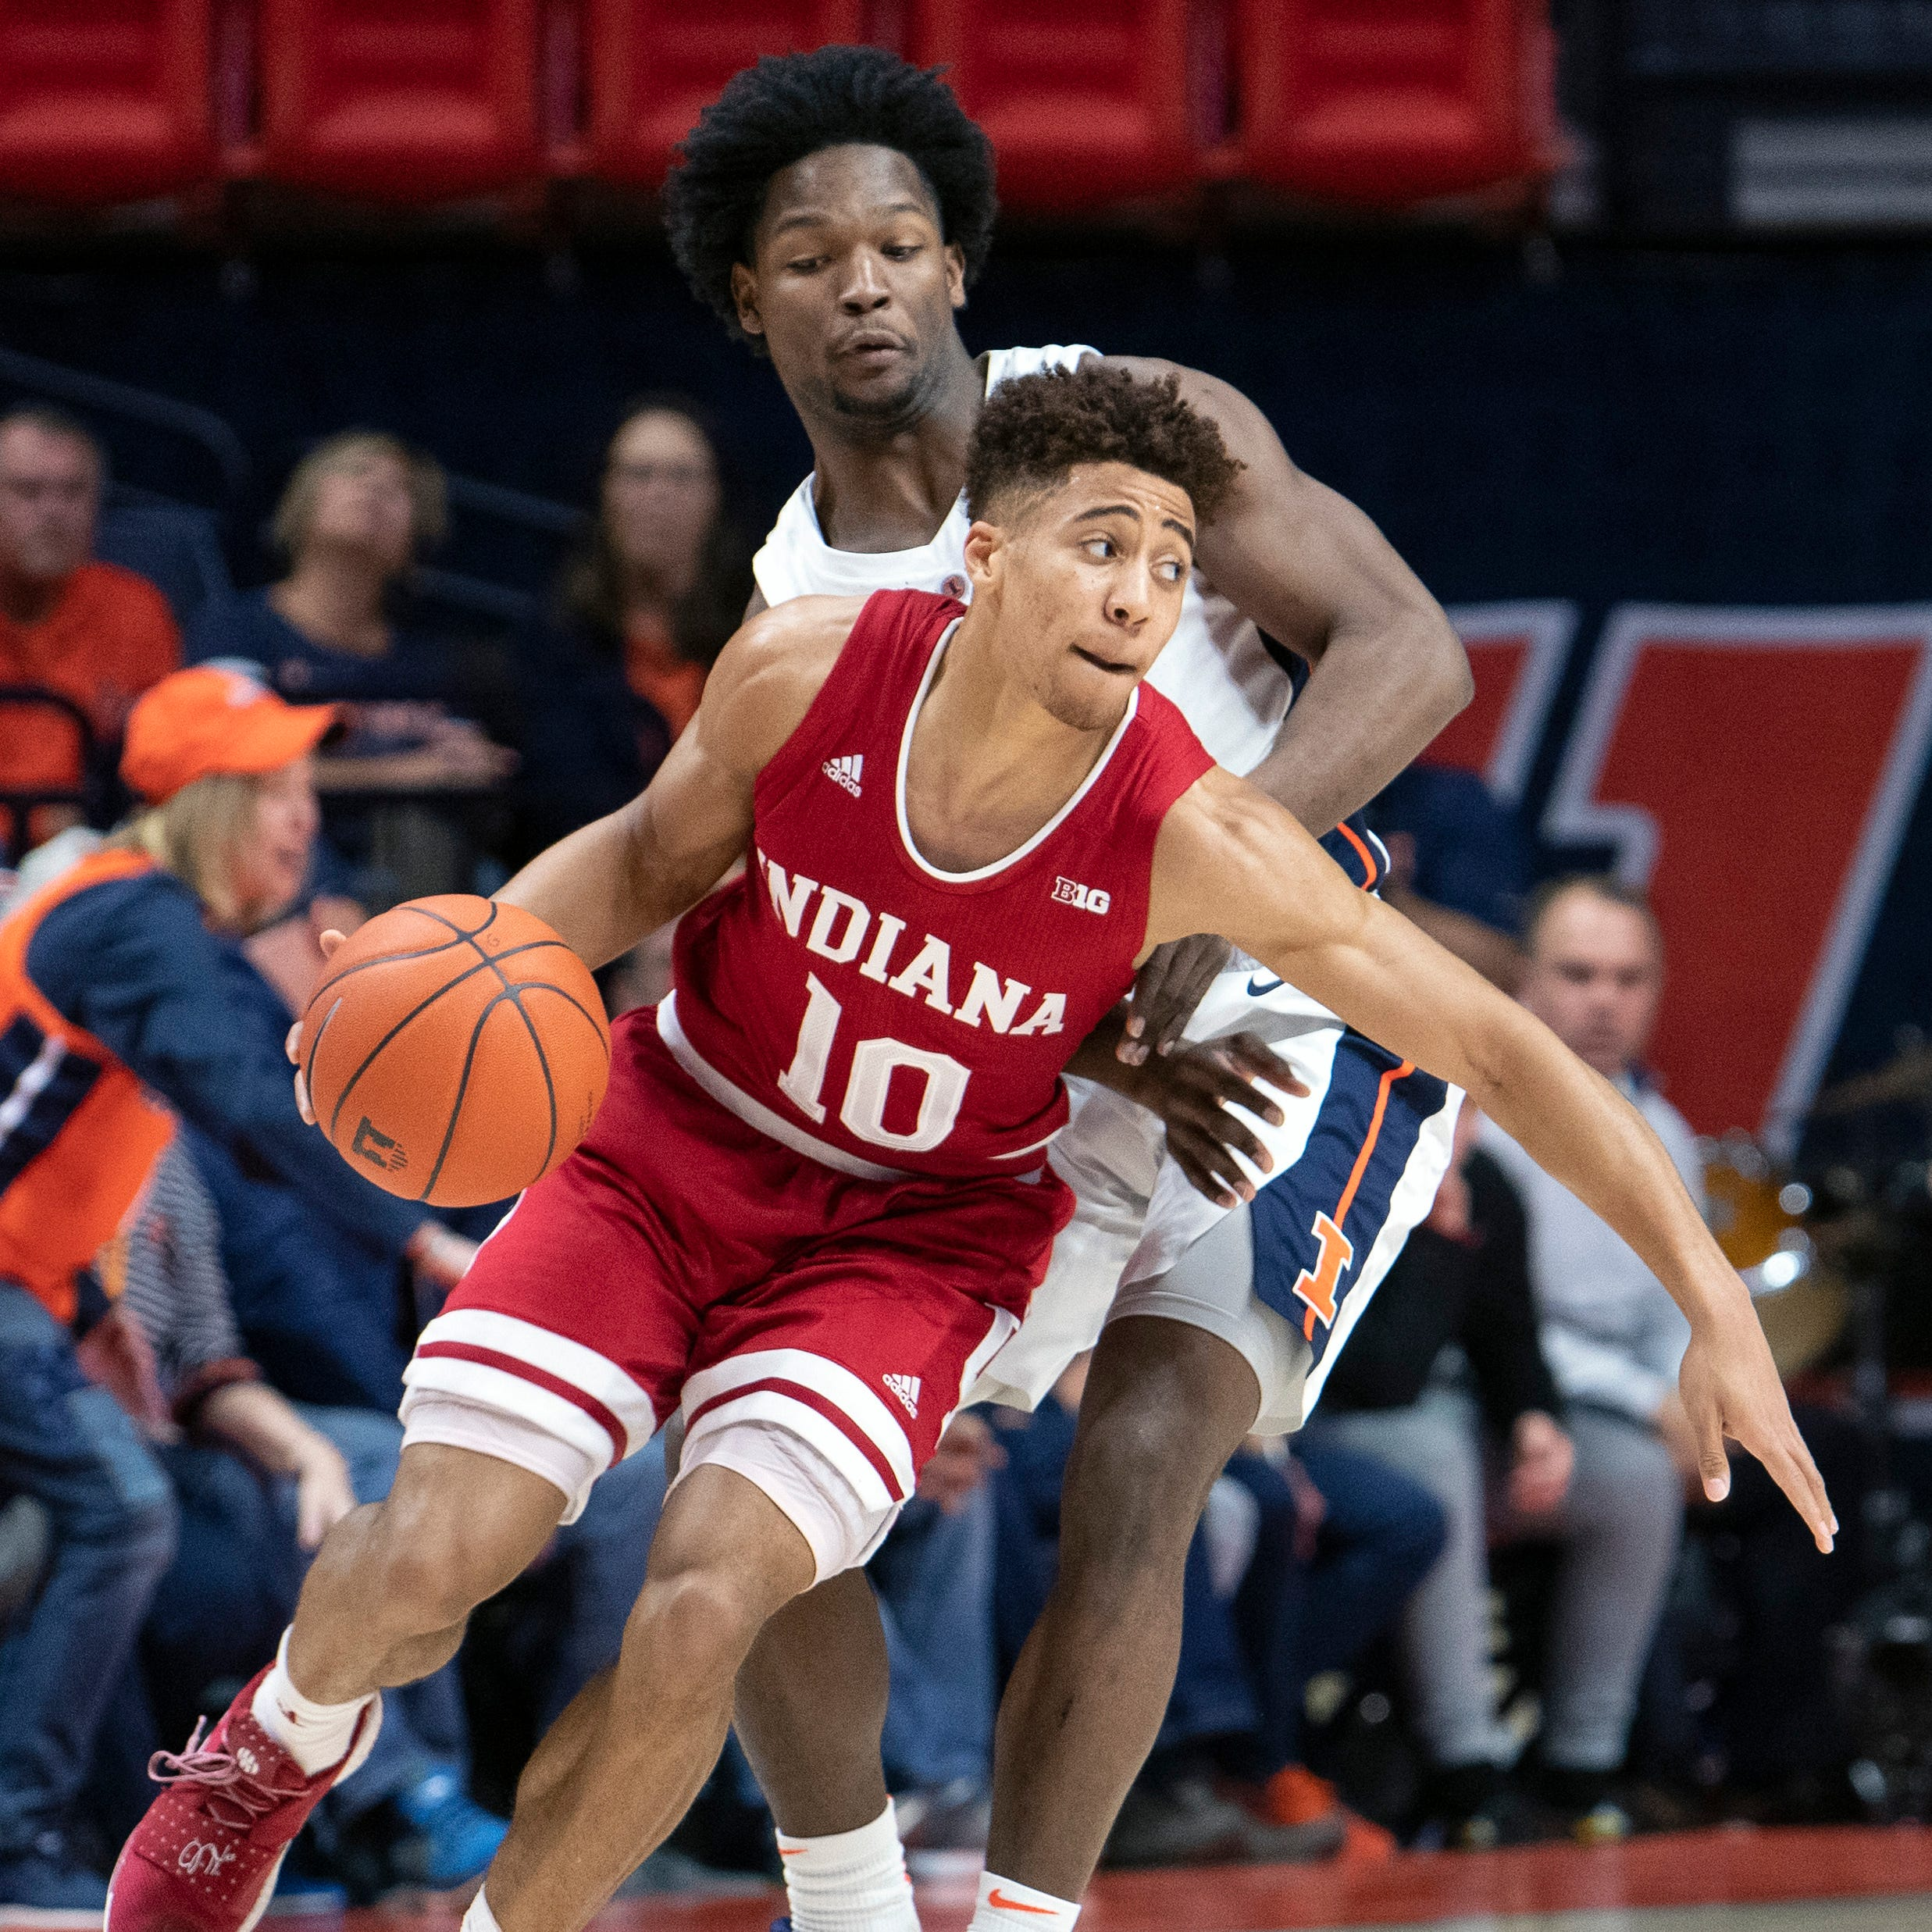 Insider: Riding unflappable Rob Phinisee, Hoosiers approach bubble